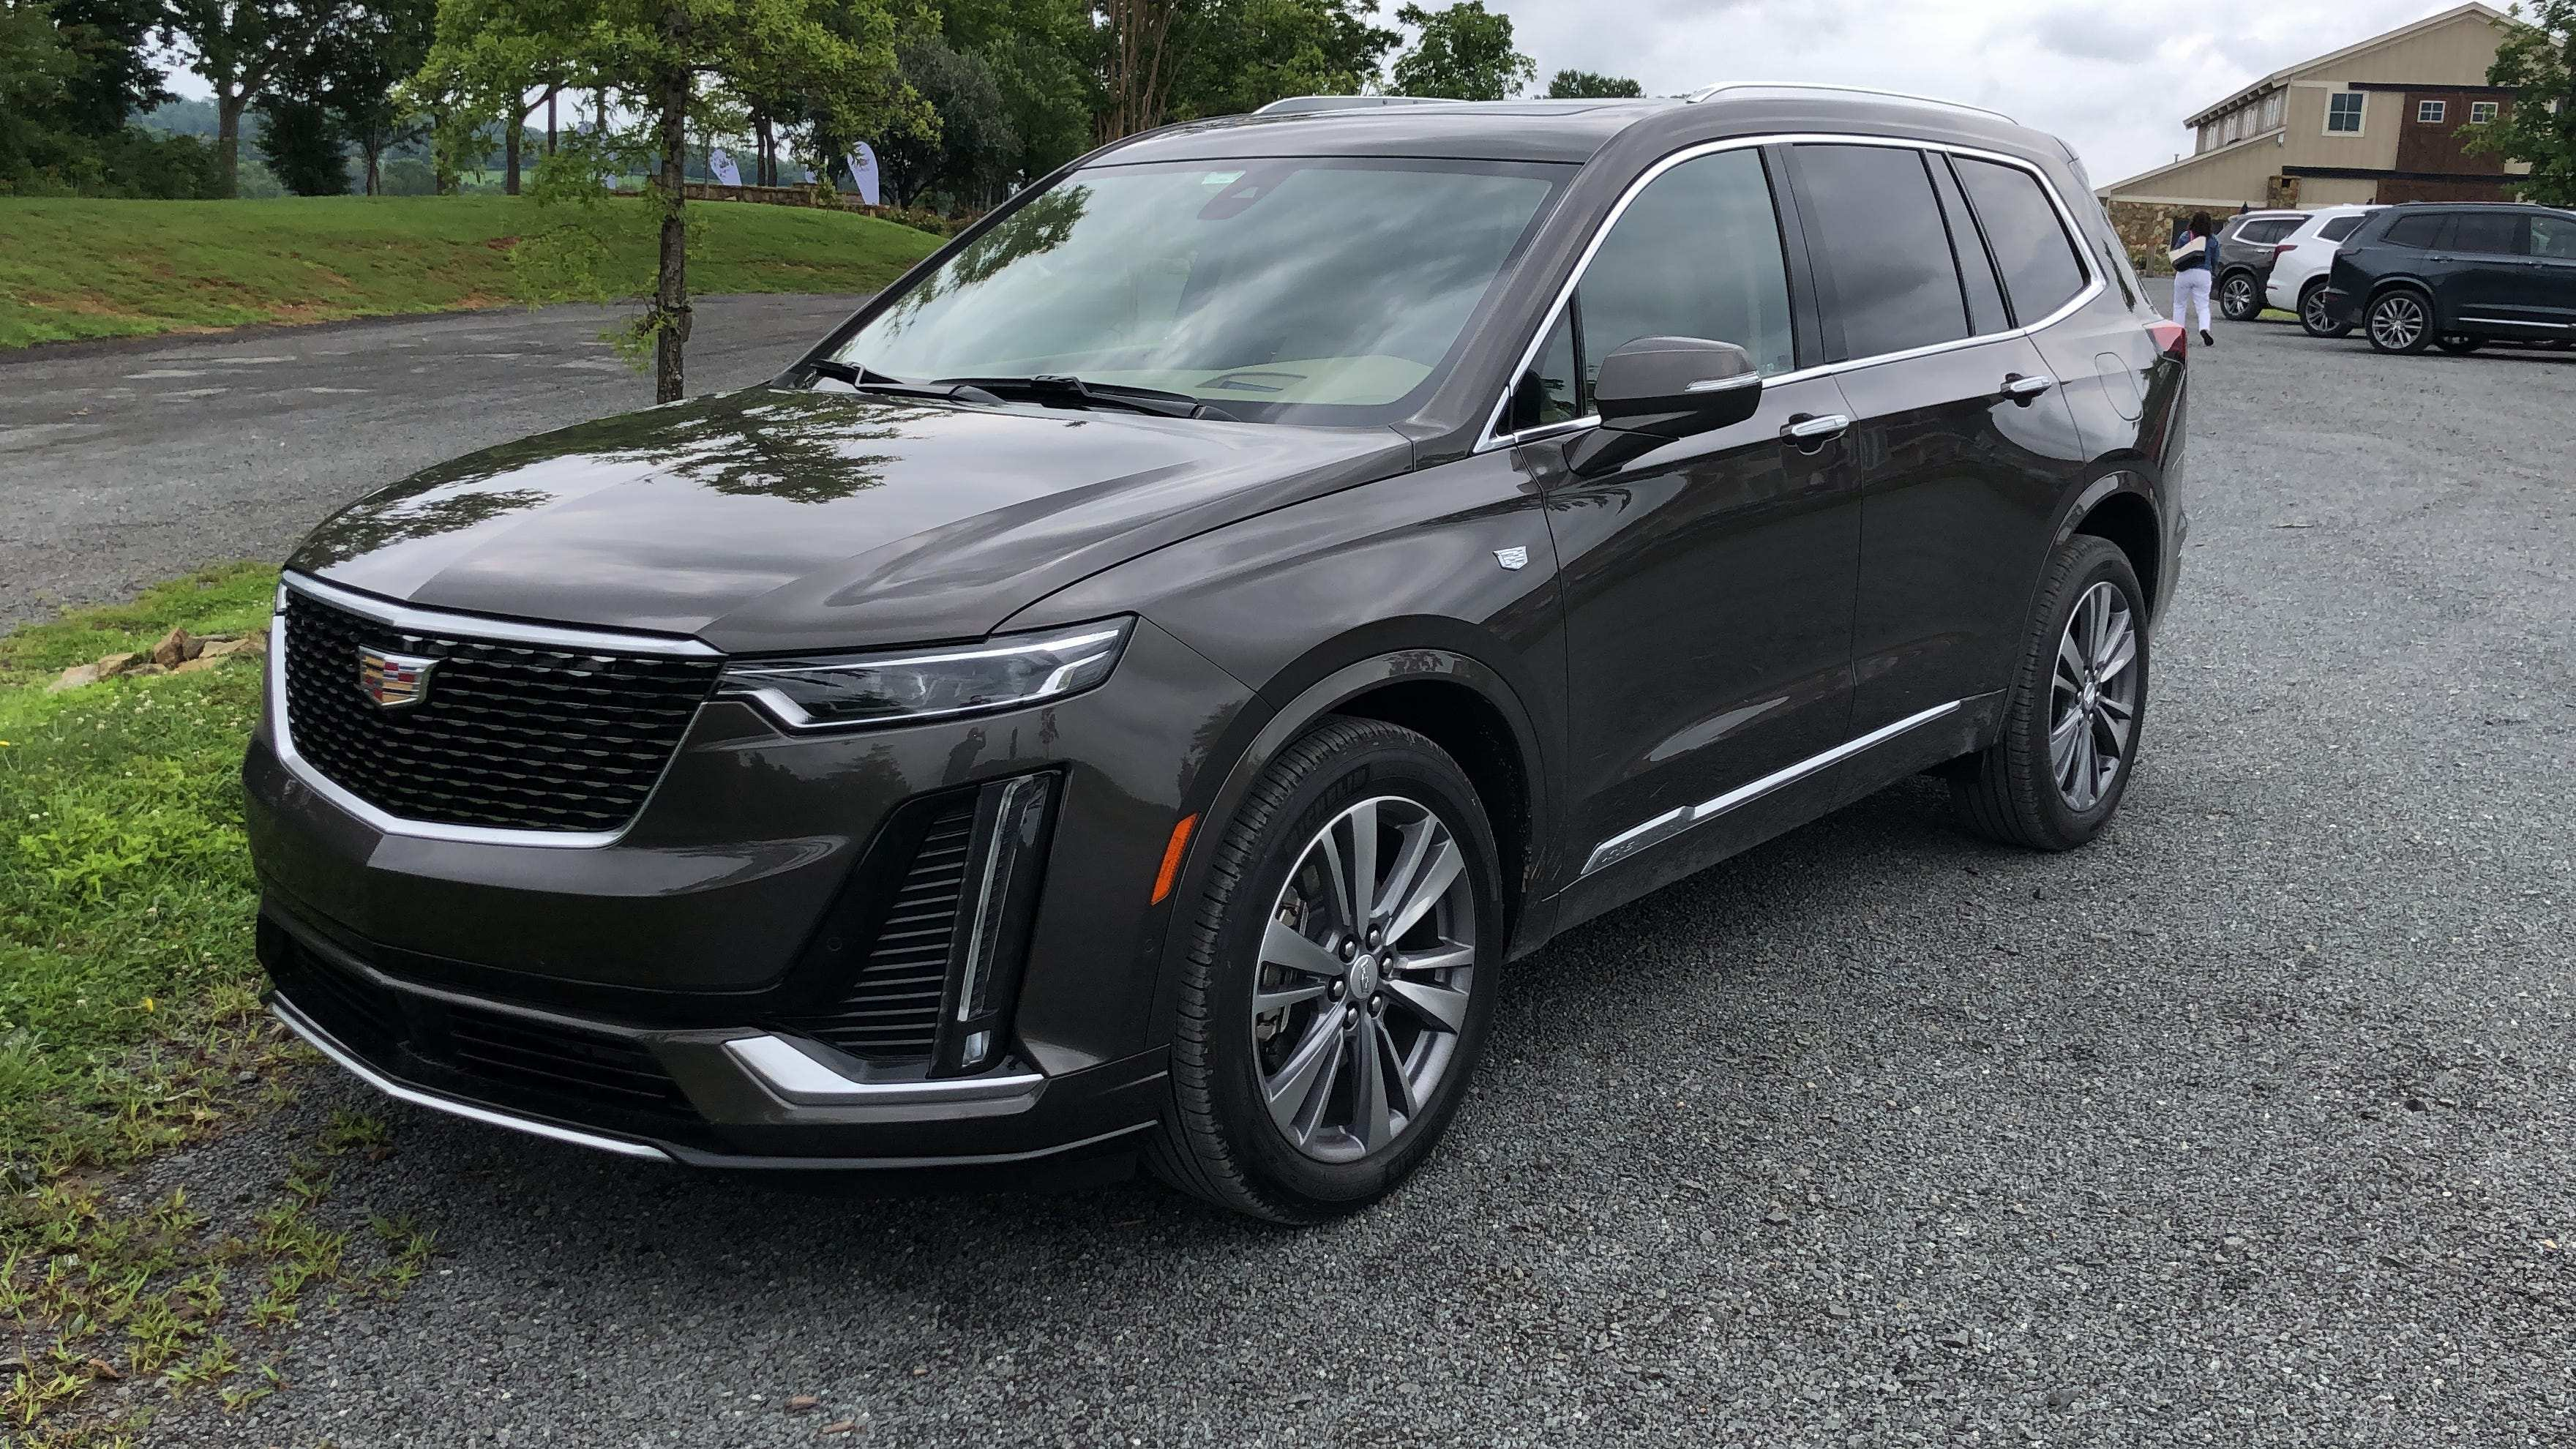 80 The Best 2020 Cadillac Xt6 Review Review And Release Date